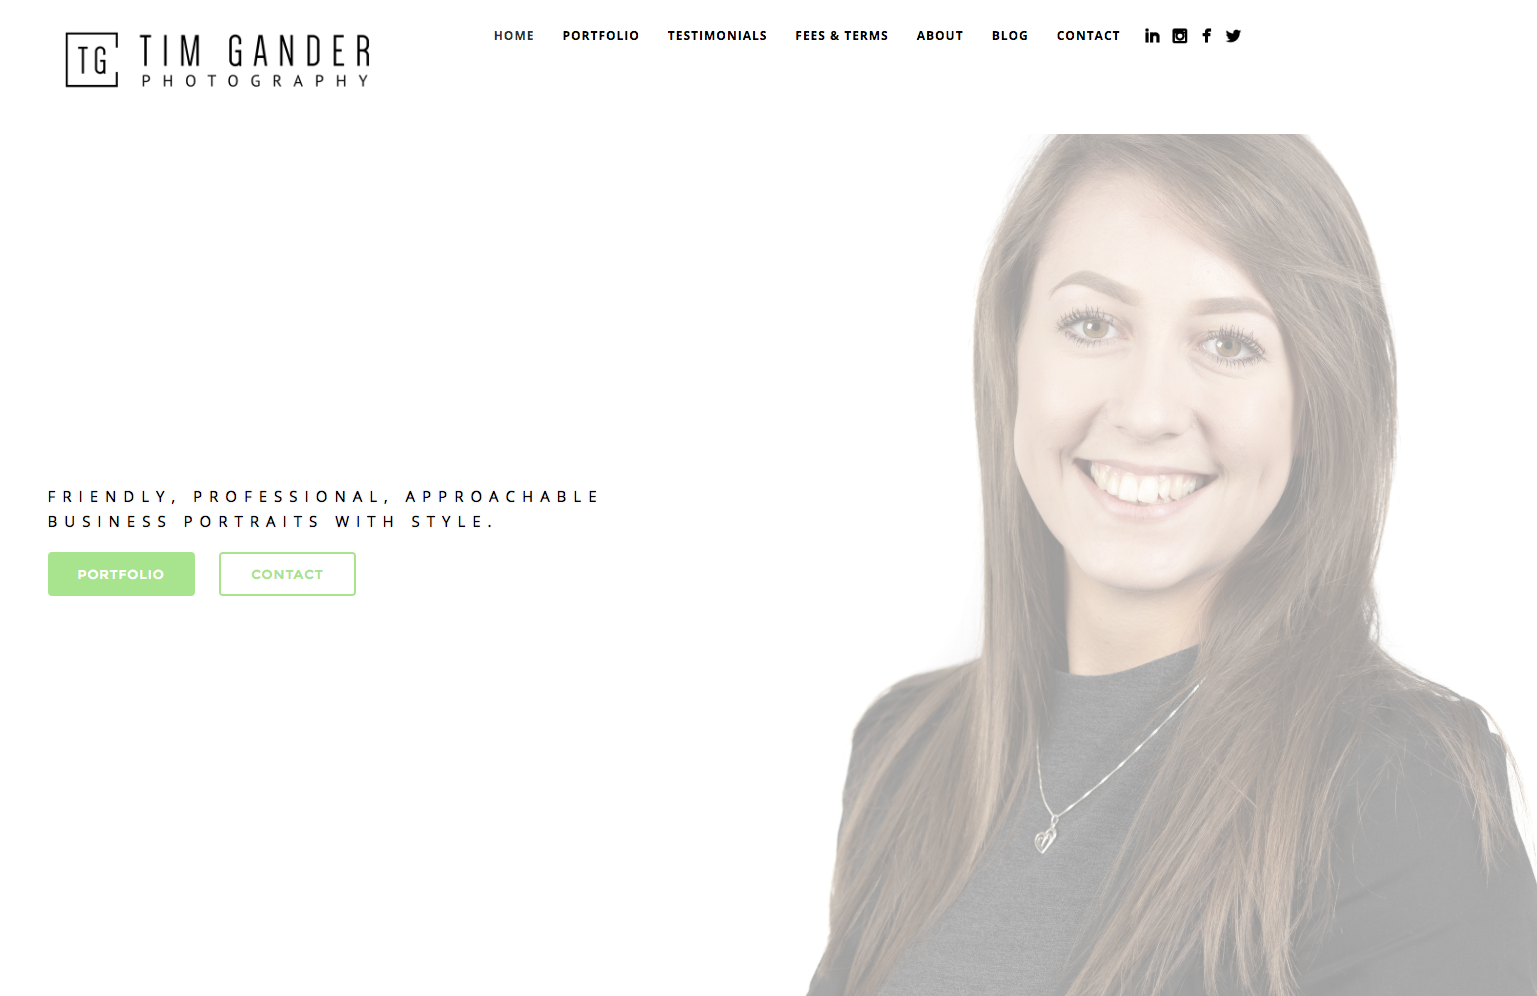 Screen grab of the Tim Gander photography home page with portrait of young business woman Hazel smiling to camera against a white background.